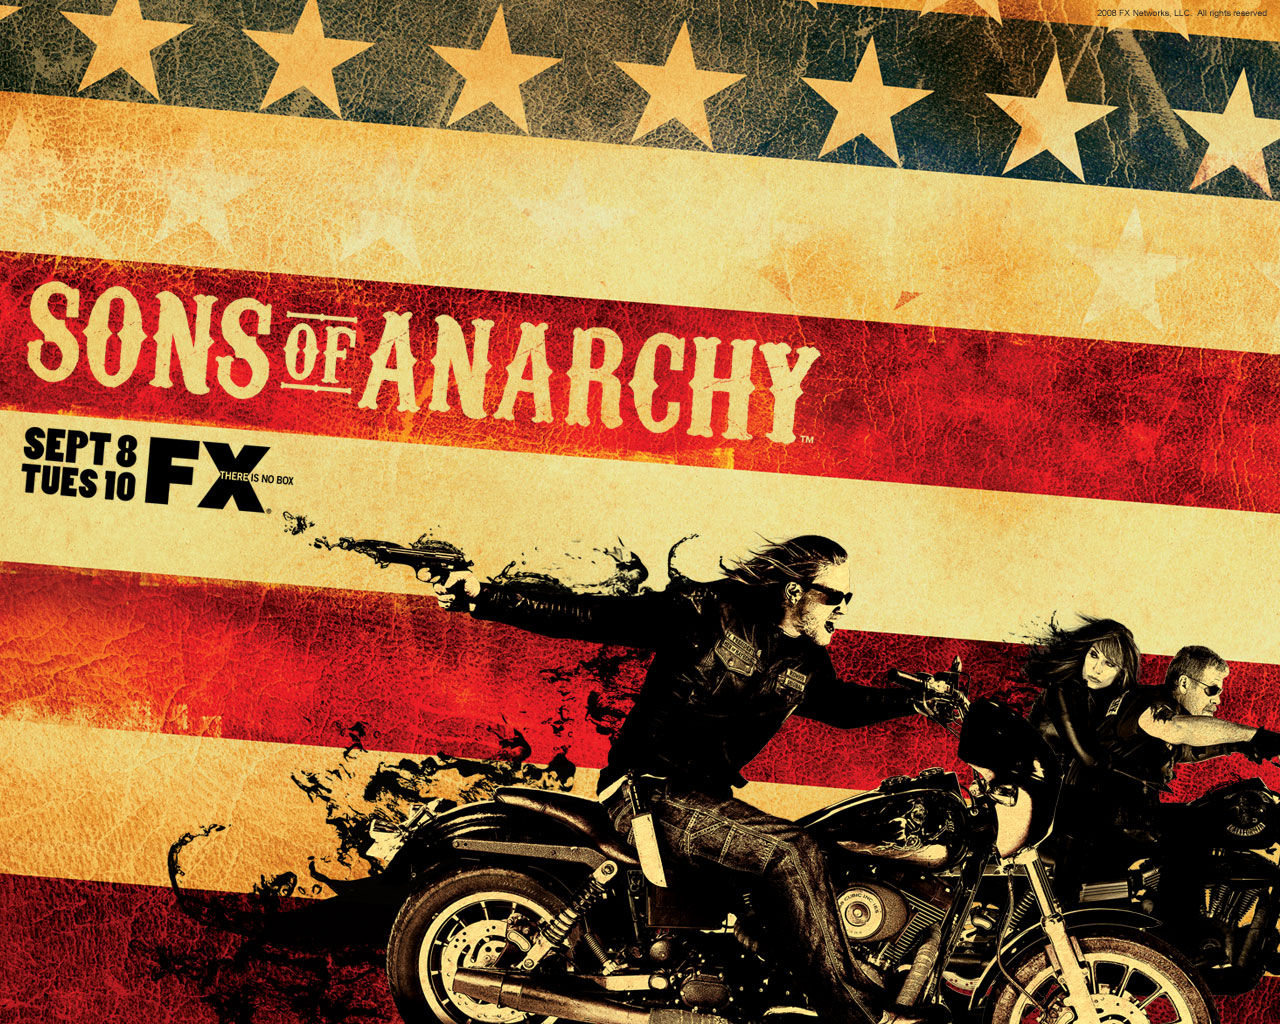 Sons Of Anarchy - Highly Recommended